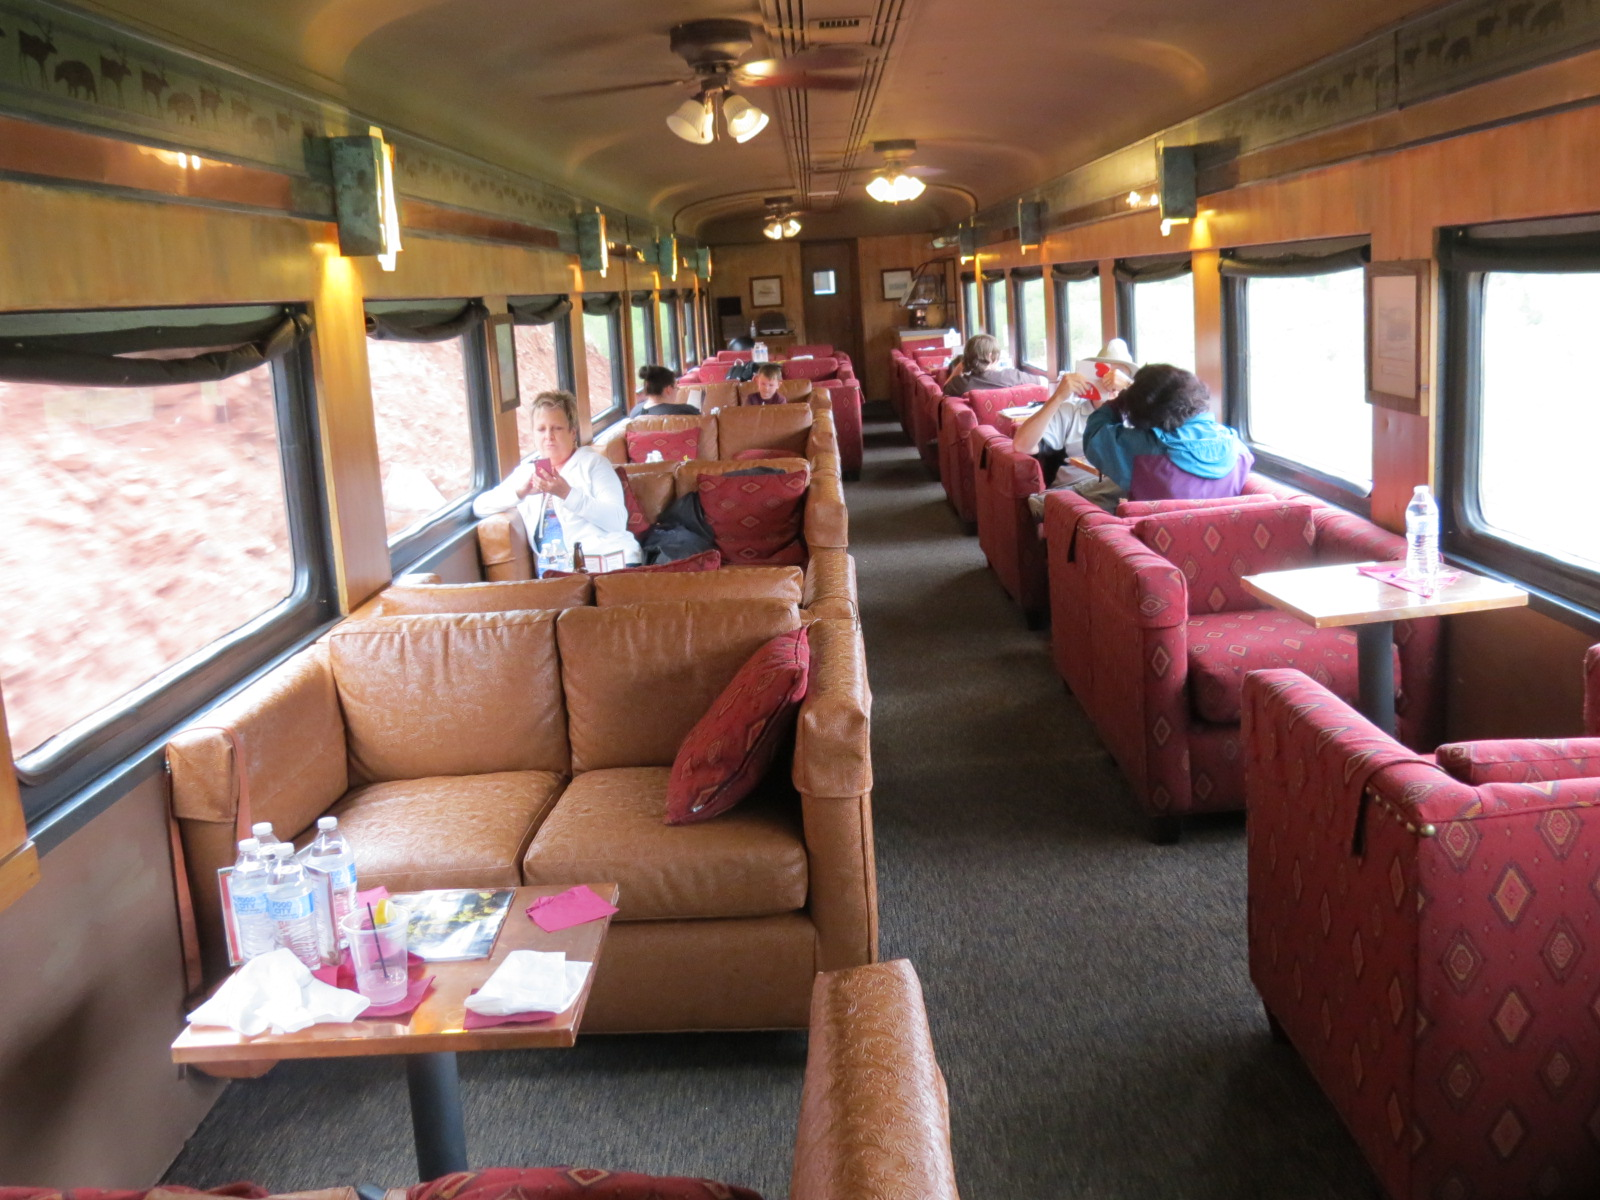 Inside our First Class car during the train trip